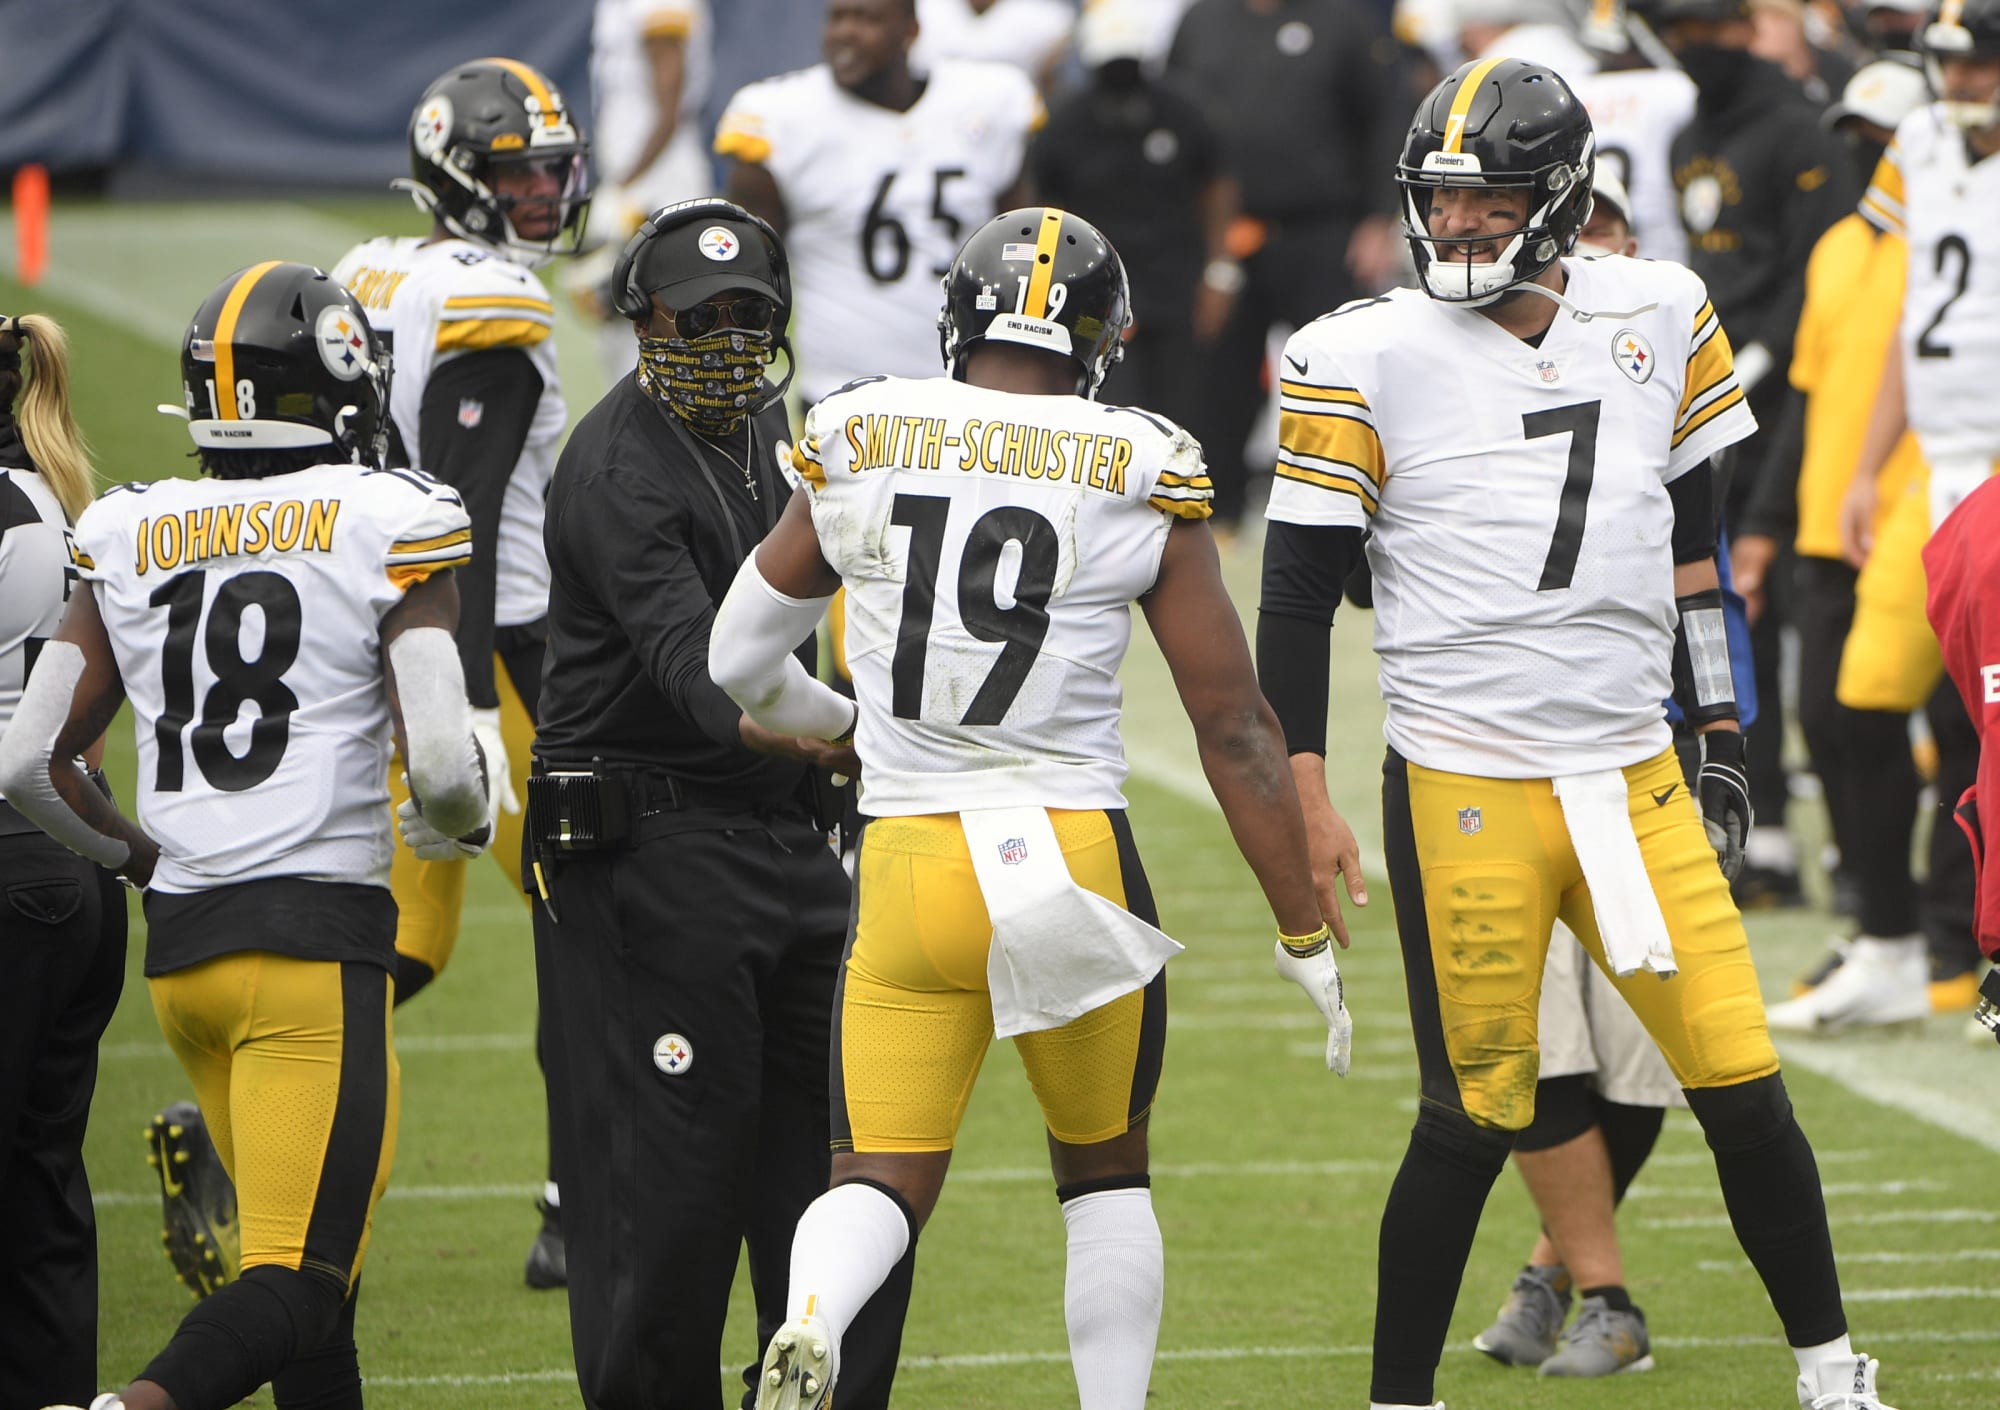 Are the Steelers underrated entering the 2021 season